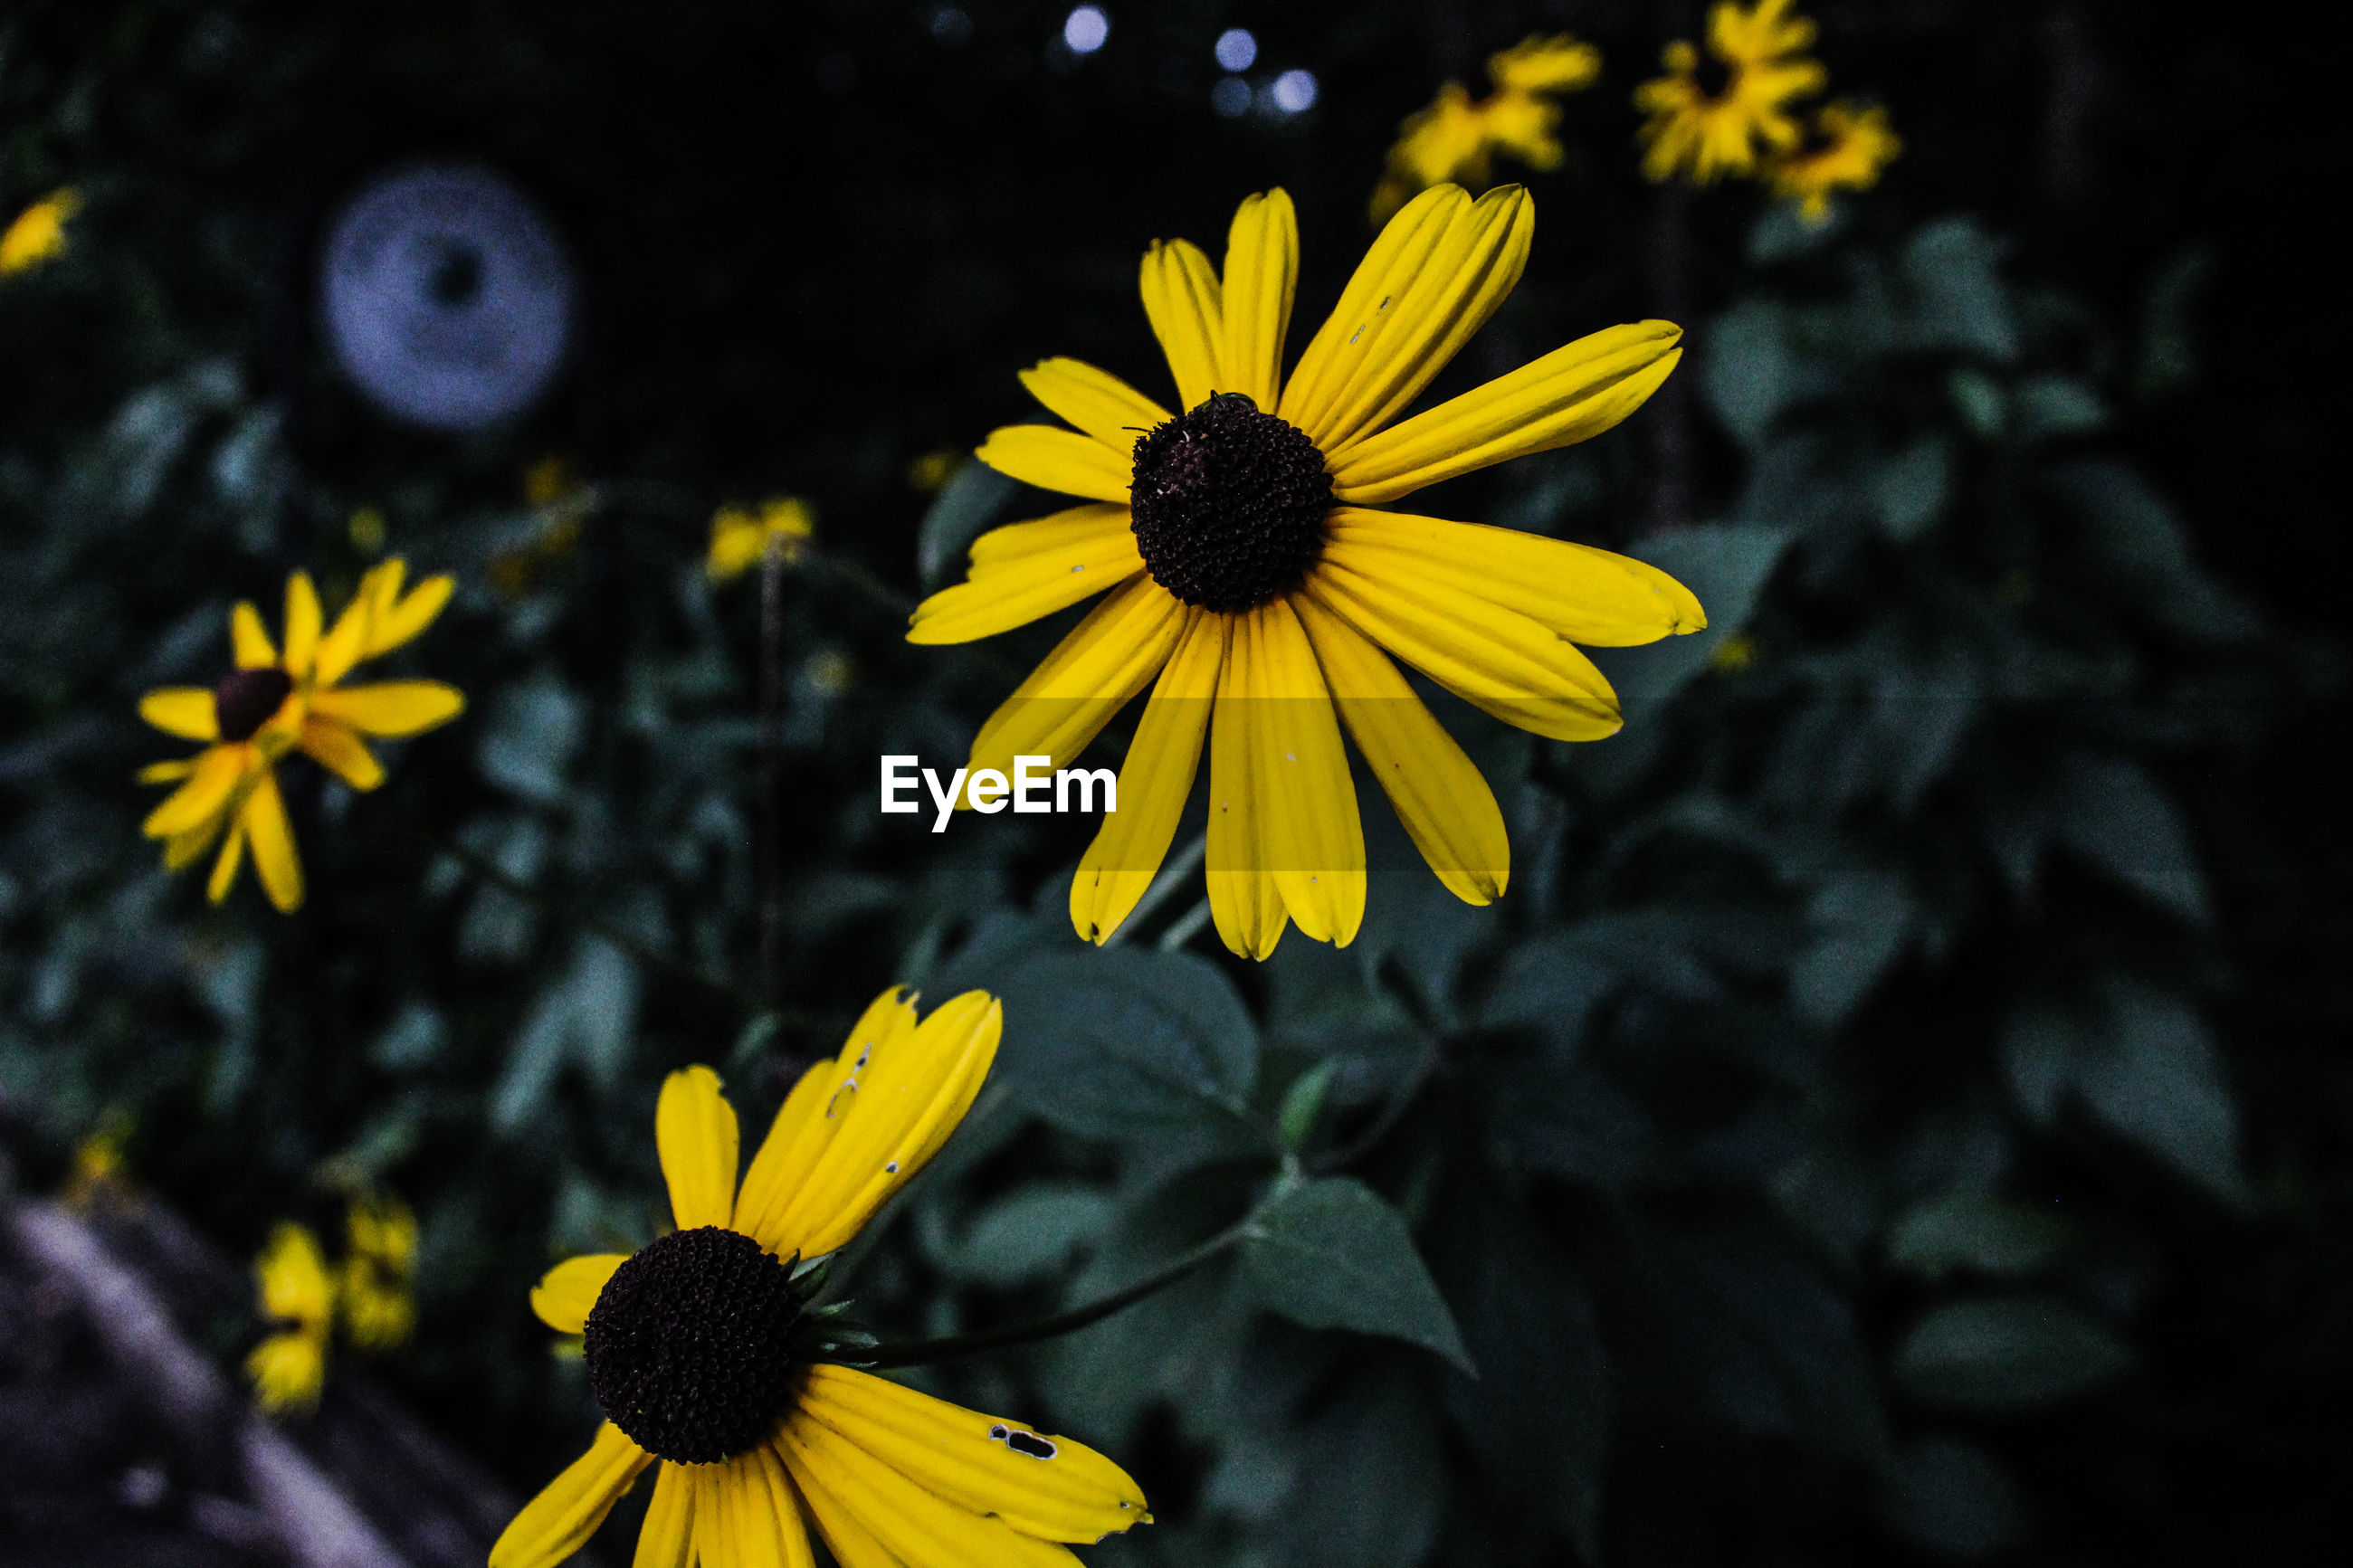 flower, petal, yellow, fragility, flower head, freshness, beauty in nature, growth, nature, plant, blooming, pollen, black-eyed susan, focus on foreground, no people, day, close-up, outdoors